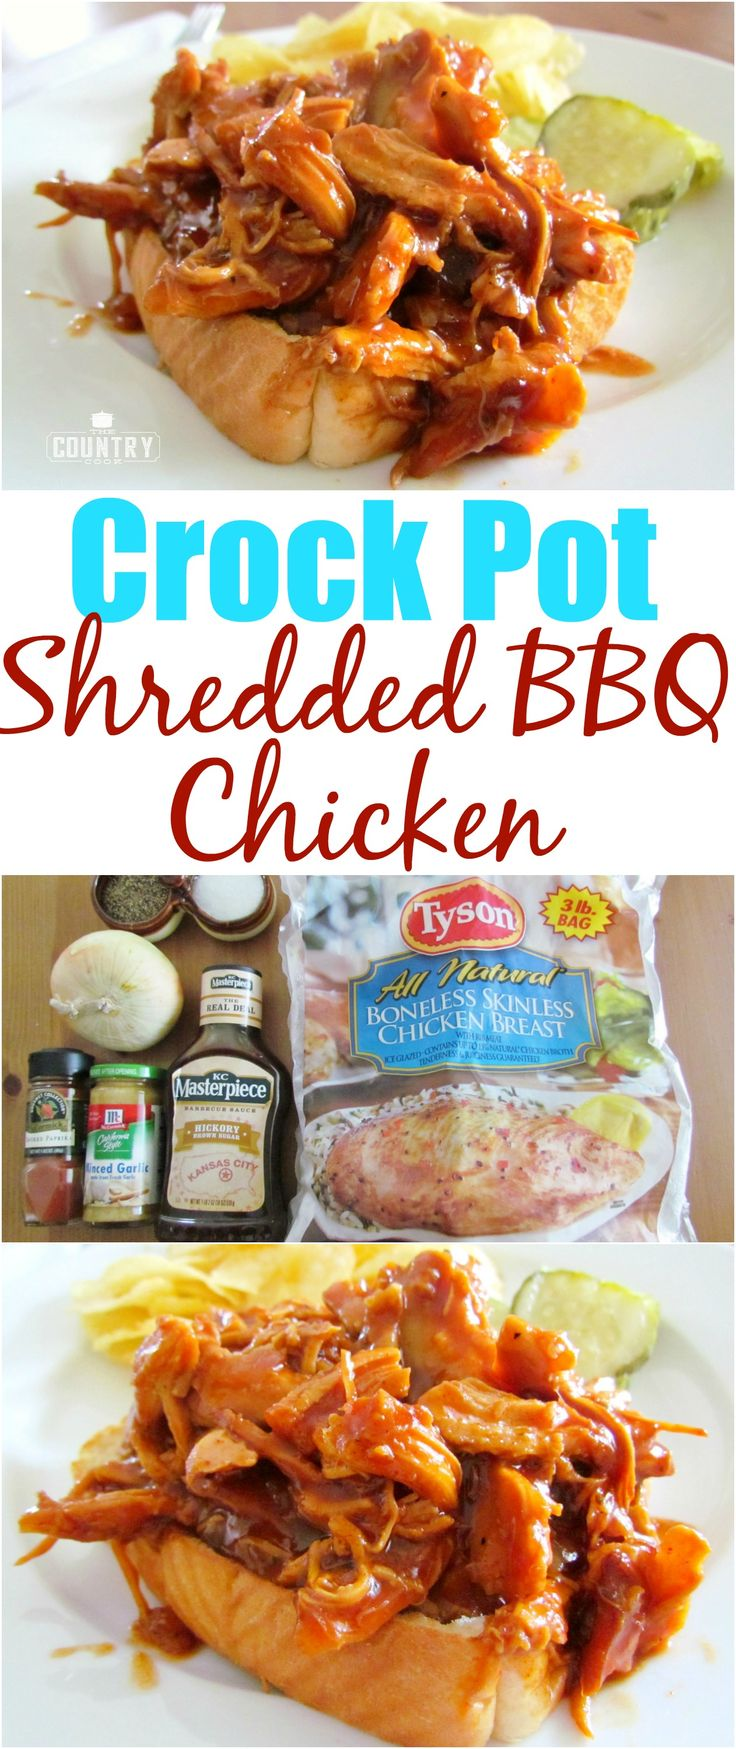 Crock Pot Shredded BBQ Chicken recipe from The Country Cook. So tender and yummy!